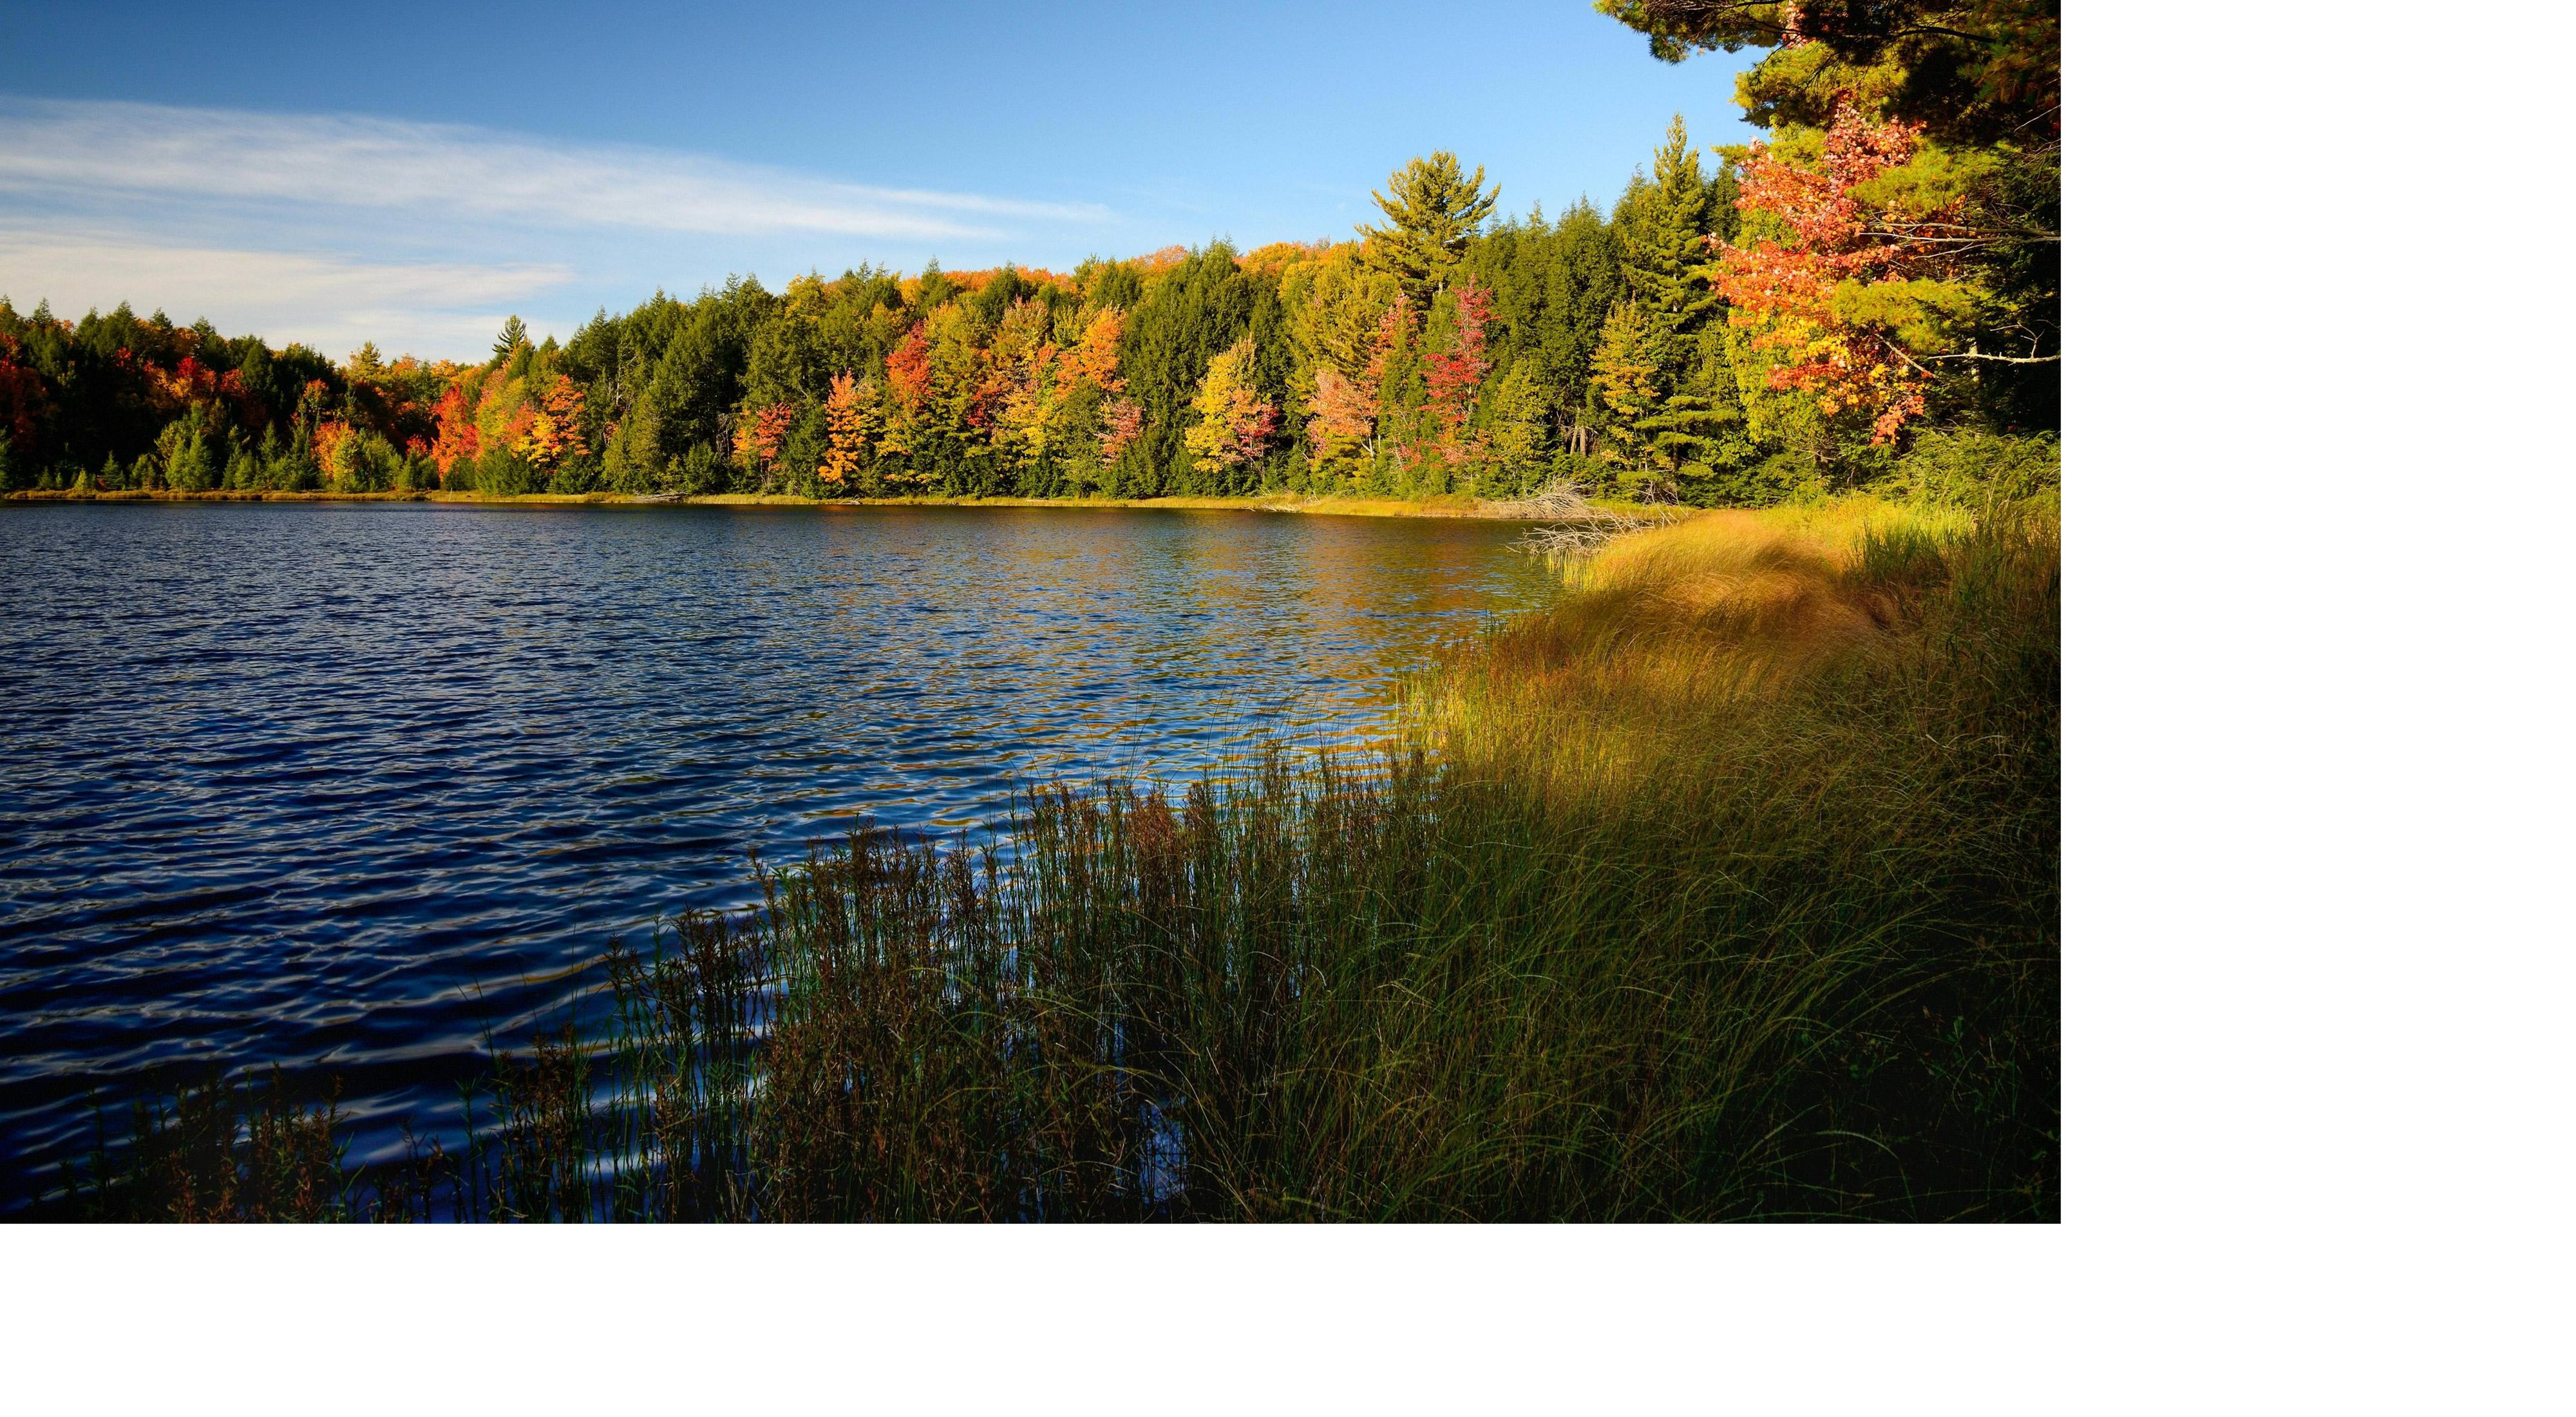 A northern Wisconsin lake shimmers in the sun, surrounded by reeds and colorful fall trees.